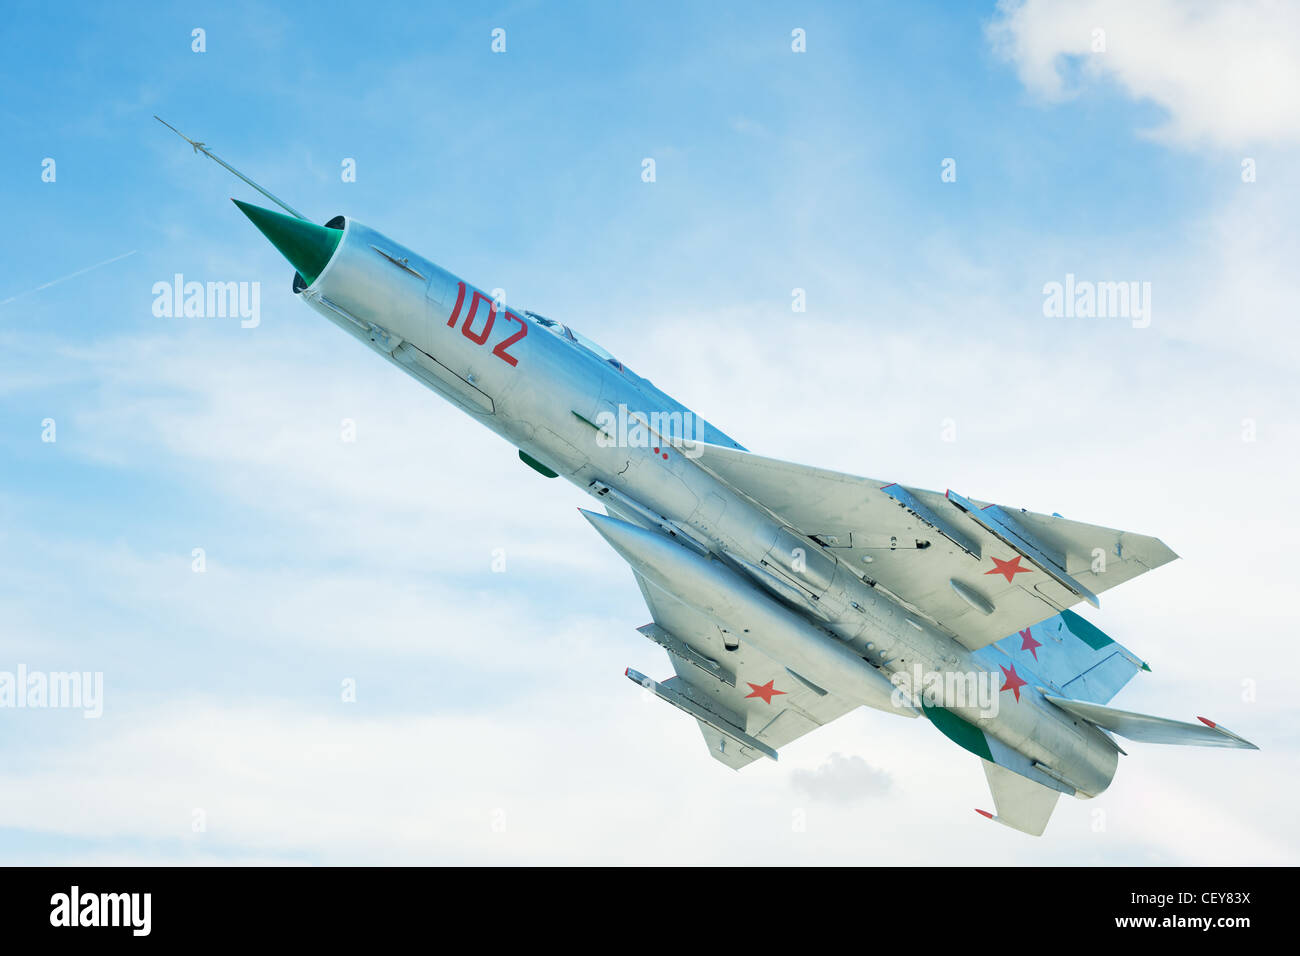 Russian jet airplane fighter in the blue sky - Stock Image